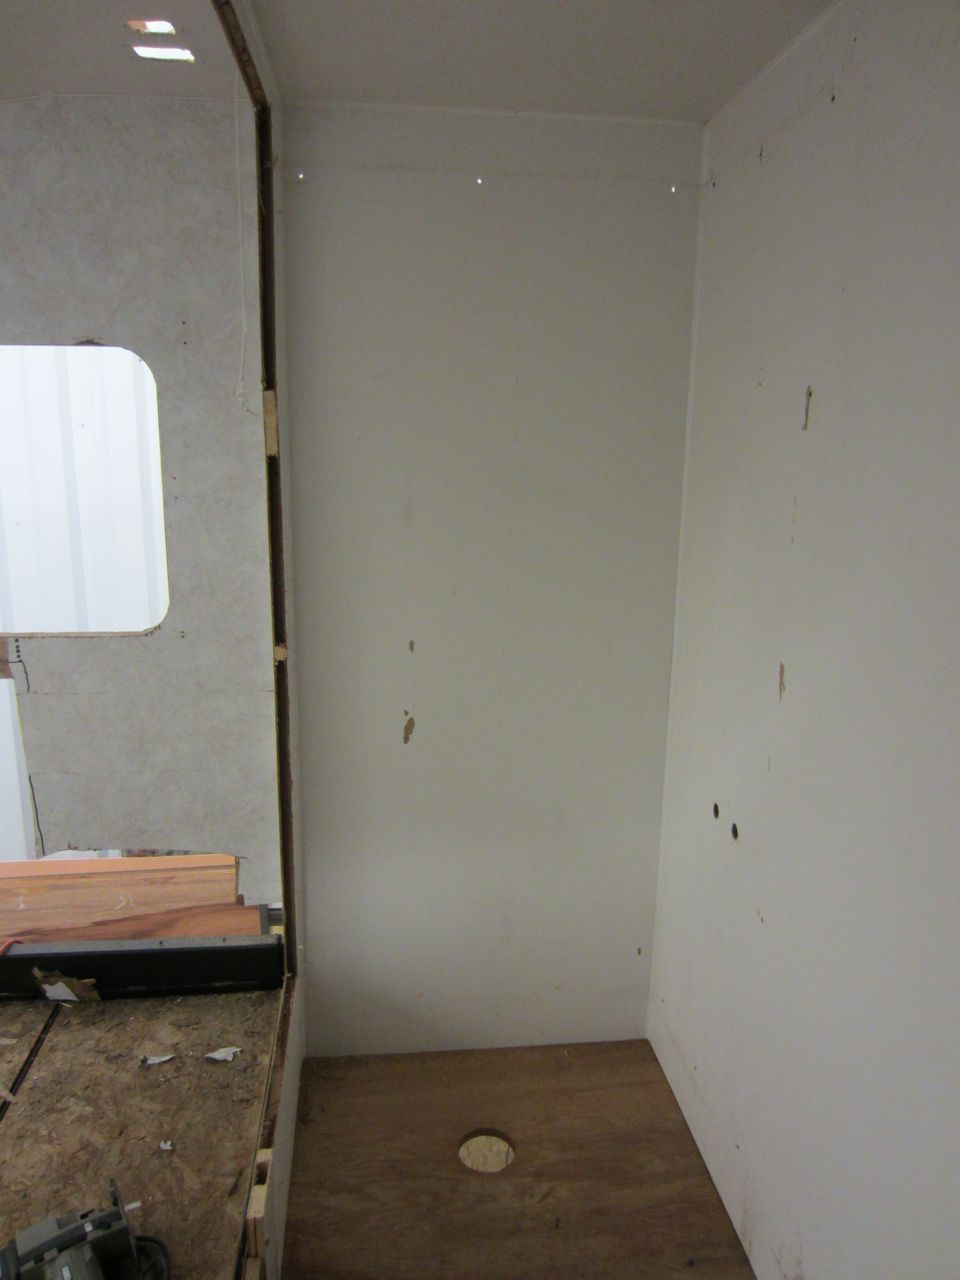 The wall in the previous picture used to be here, to the right of the window, separating the bedroom from the shower.